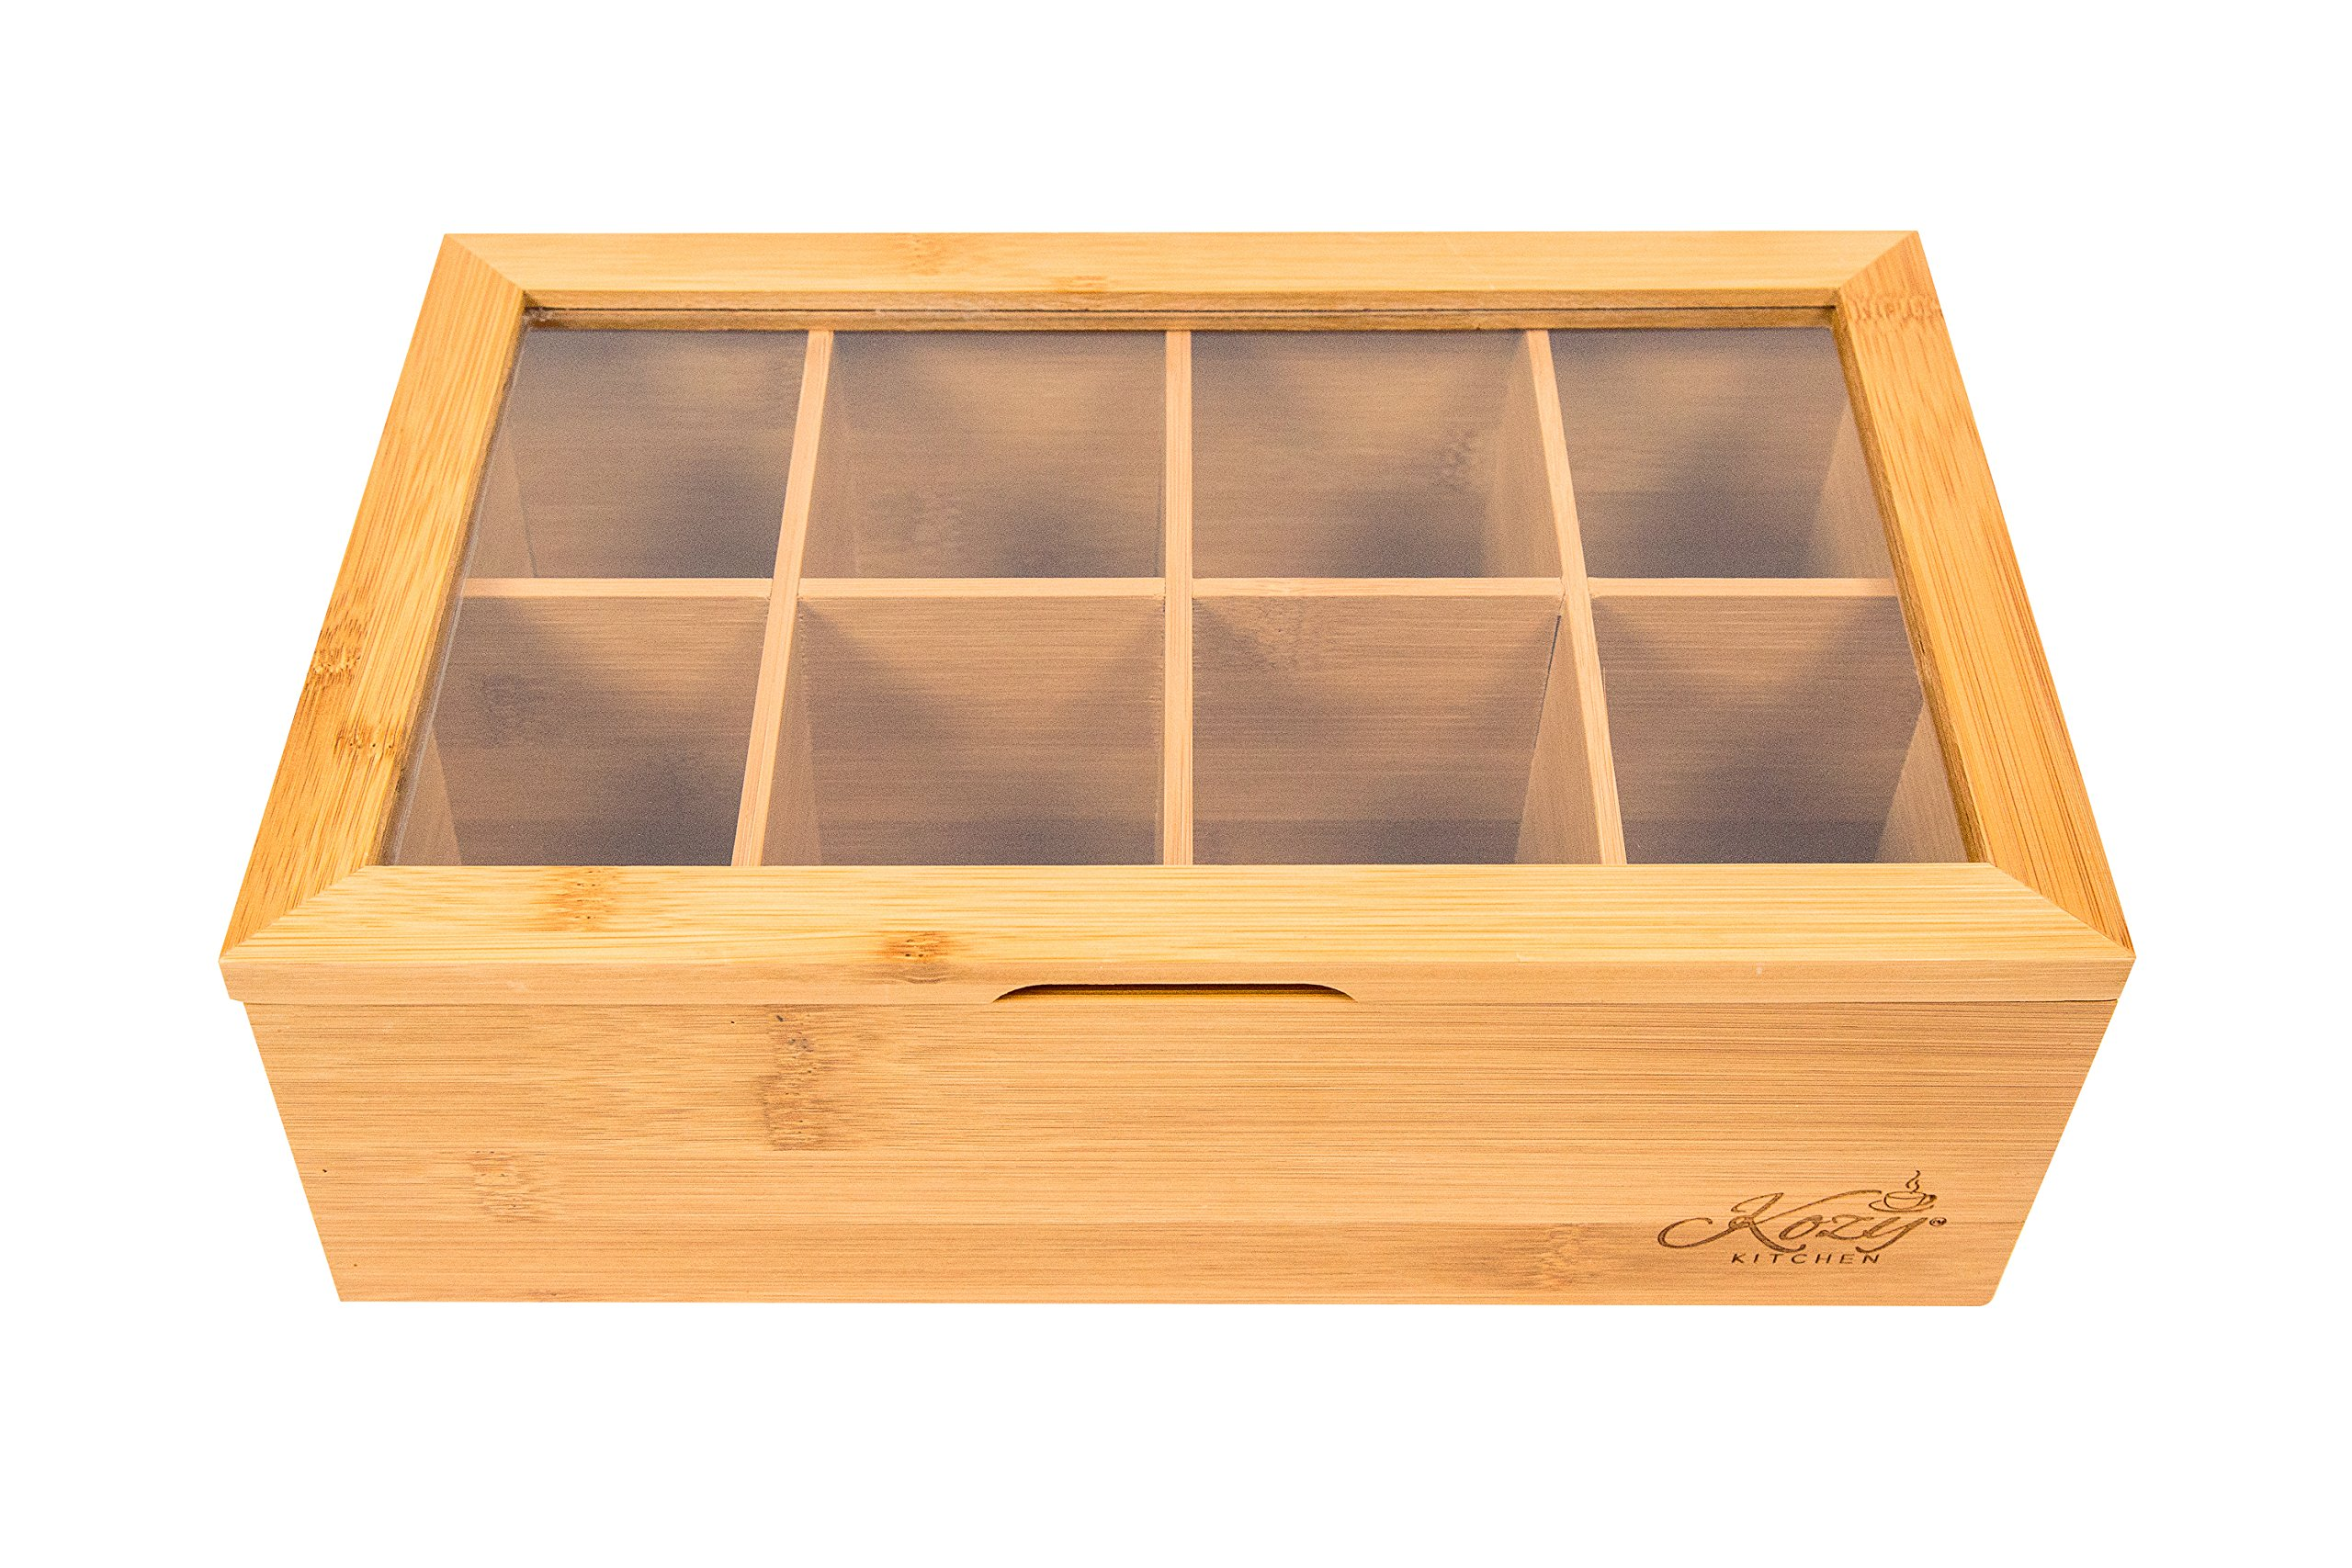 Bamboo Tea Box Storage Organizer, 100% Natural Wooden Finish Tea Bag Organizer 8 Storage Compartments and Clear Shatterproof Hinged Lid by Kozy Kitchen (Image #3)